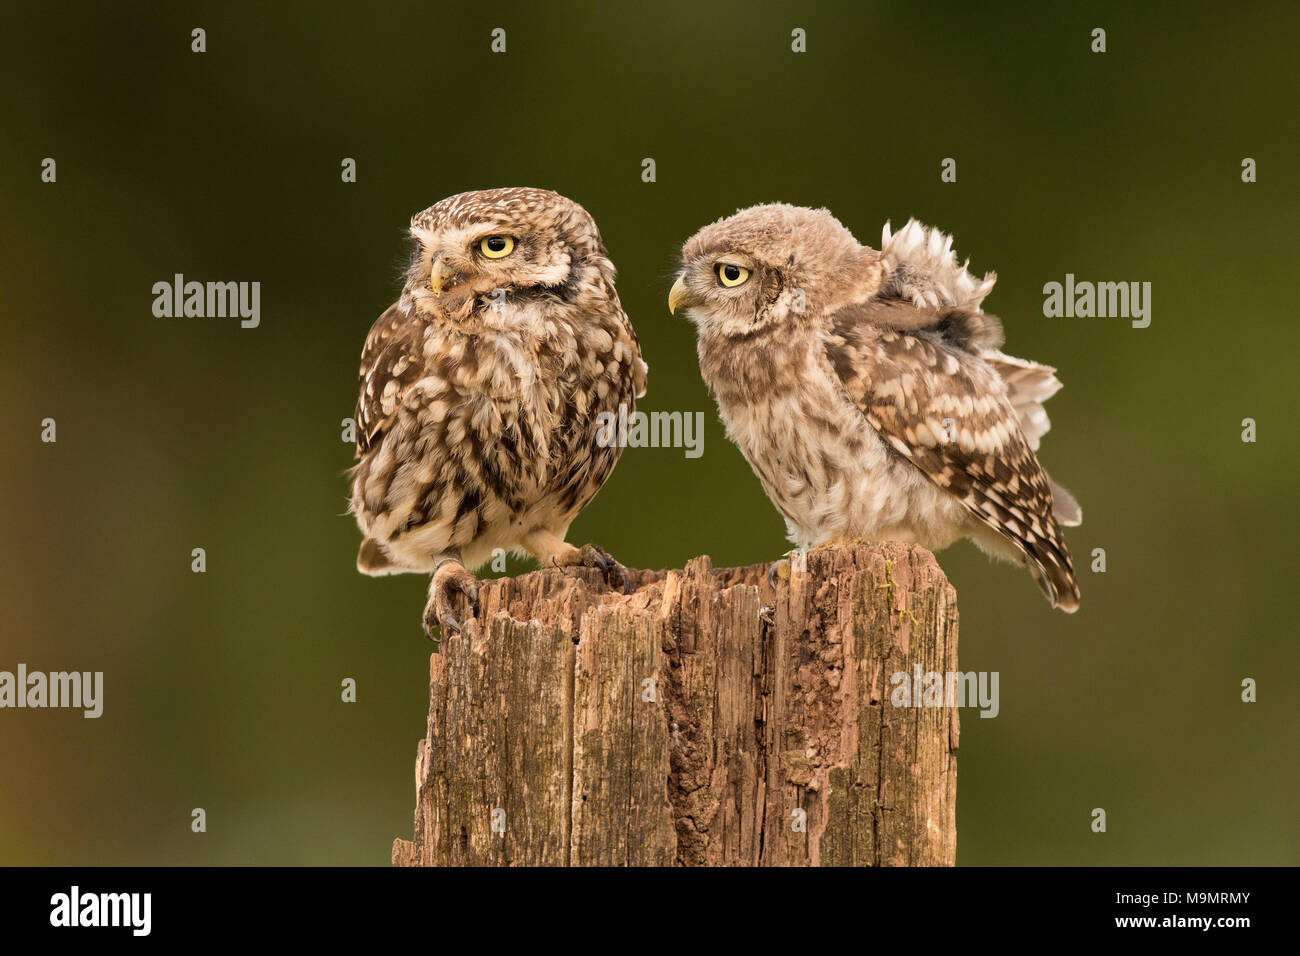 Little owl (Athene noctua), adult bird mit young animal, Rhineland-Palatinate, Germany - Stock Image